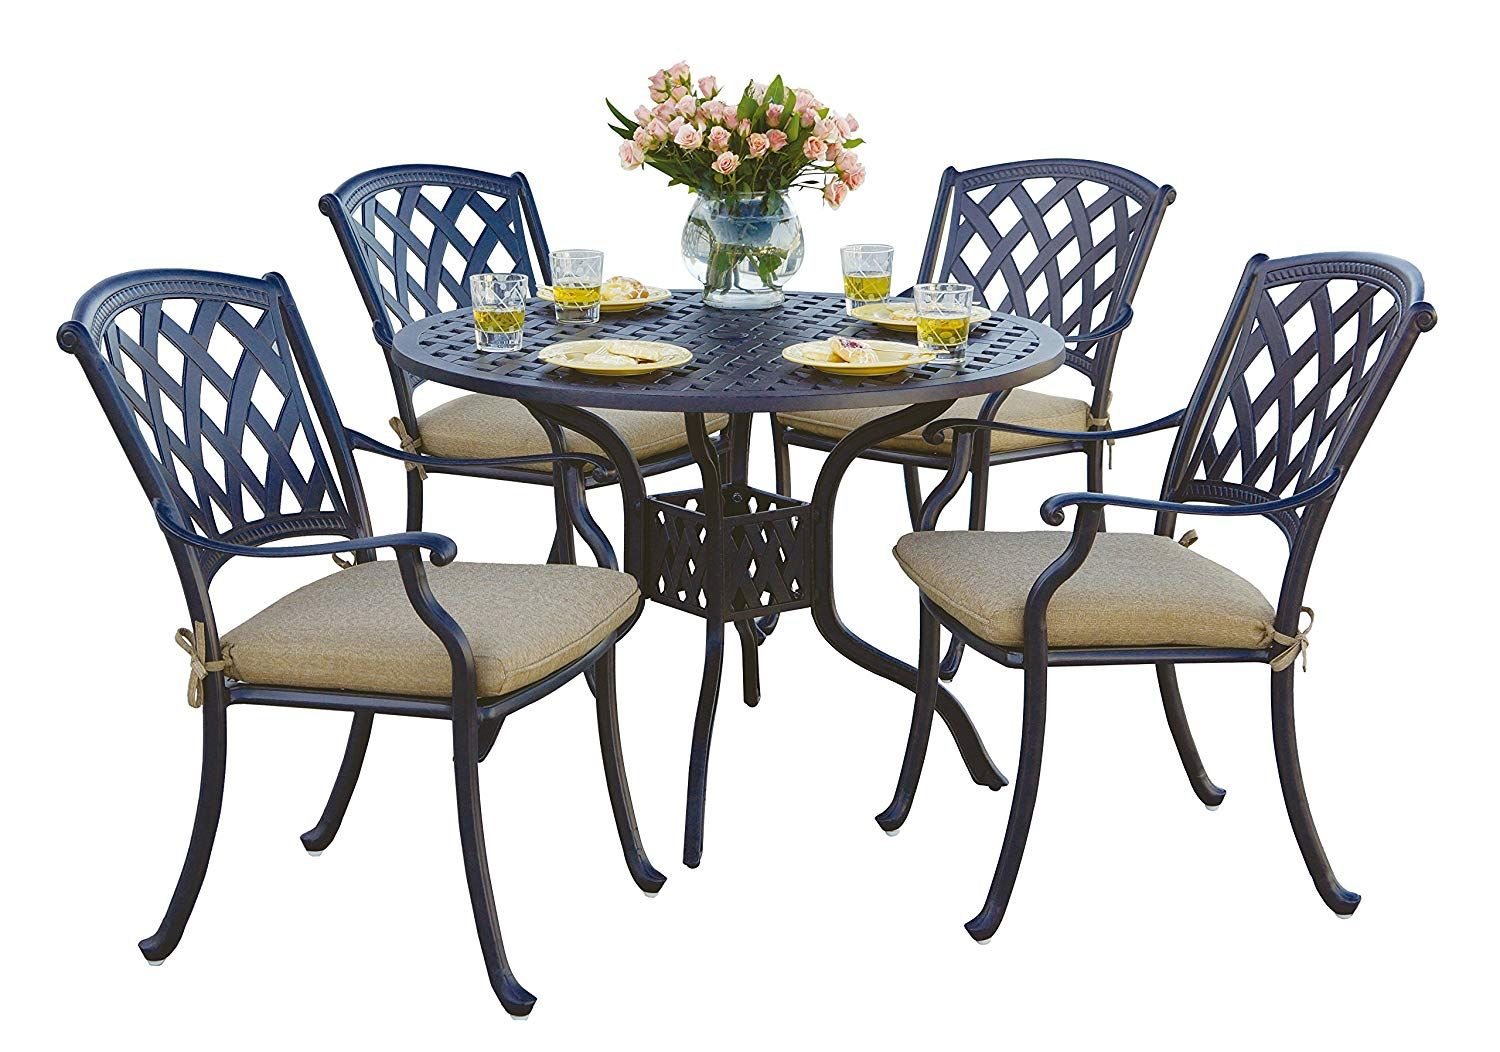 Set includes dining chairs with seat cushions and uu round